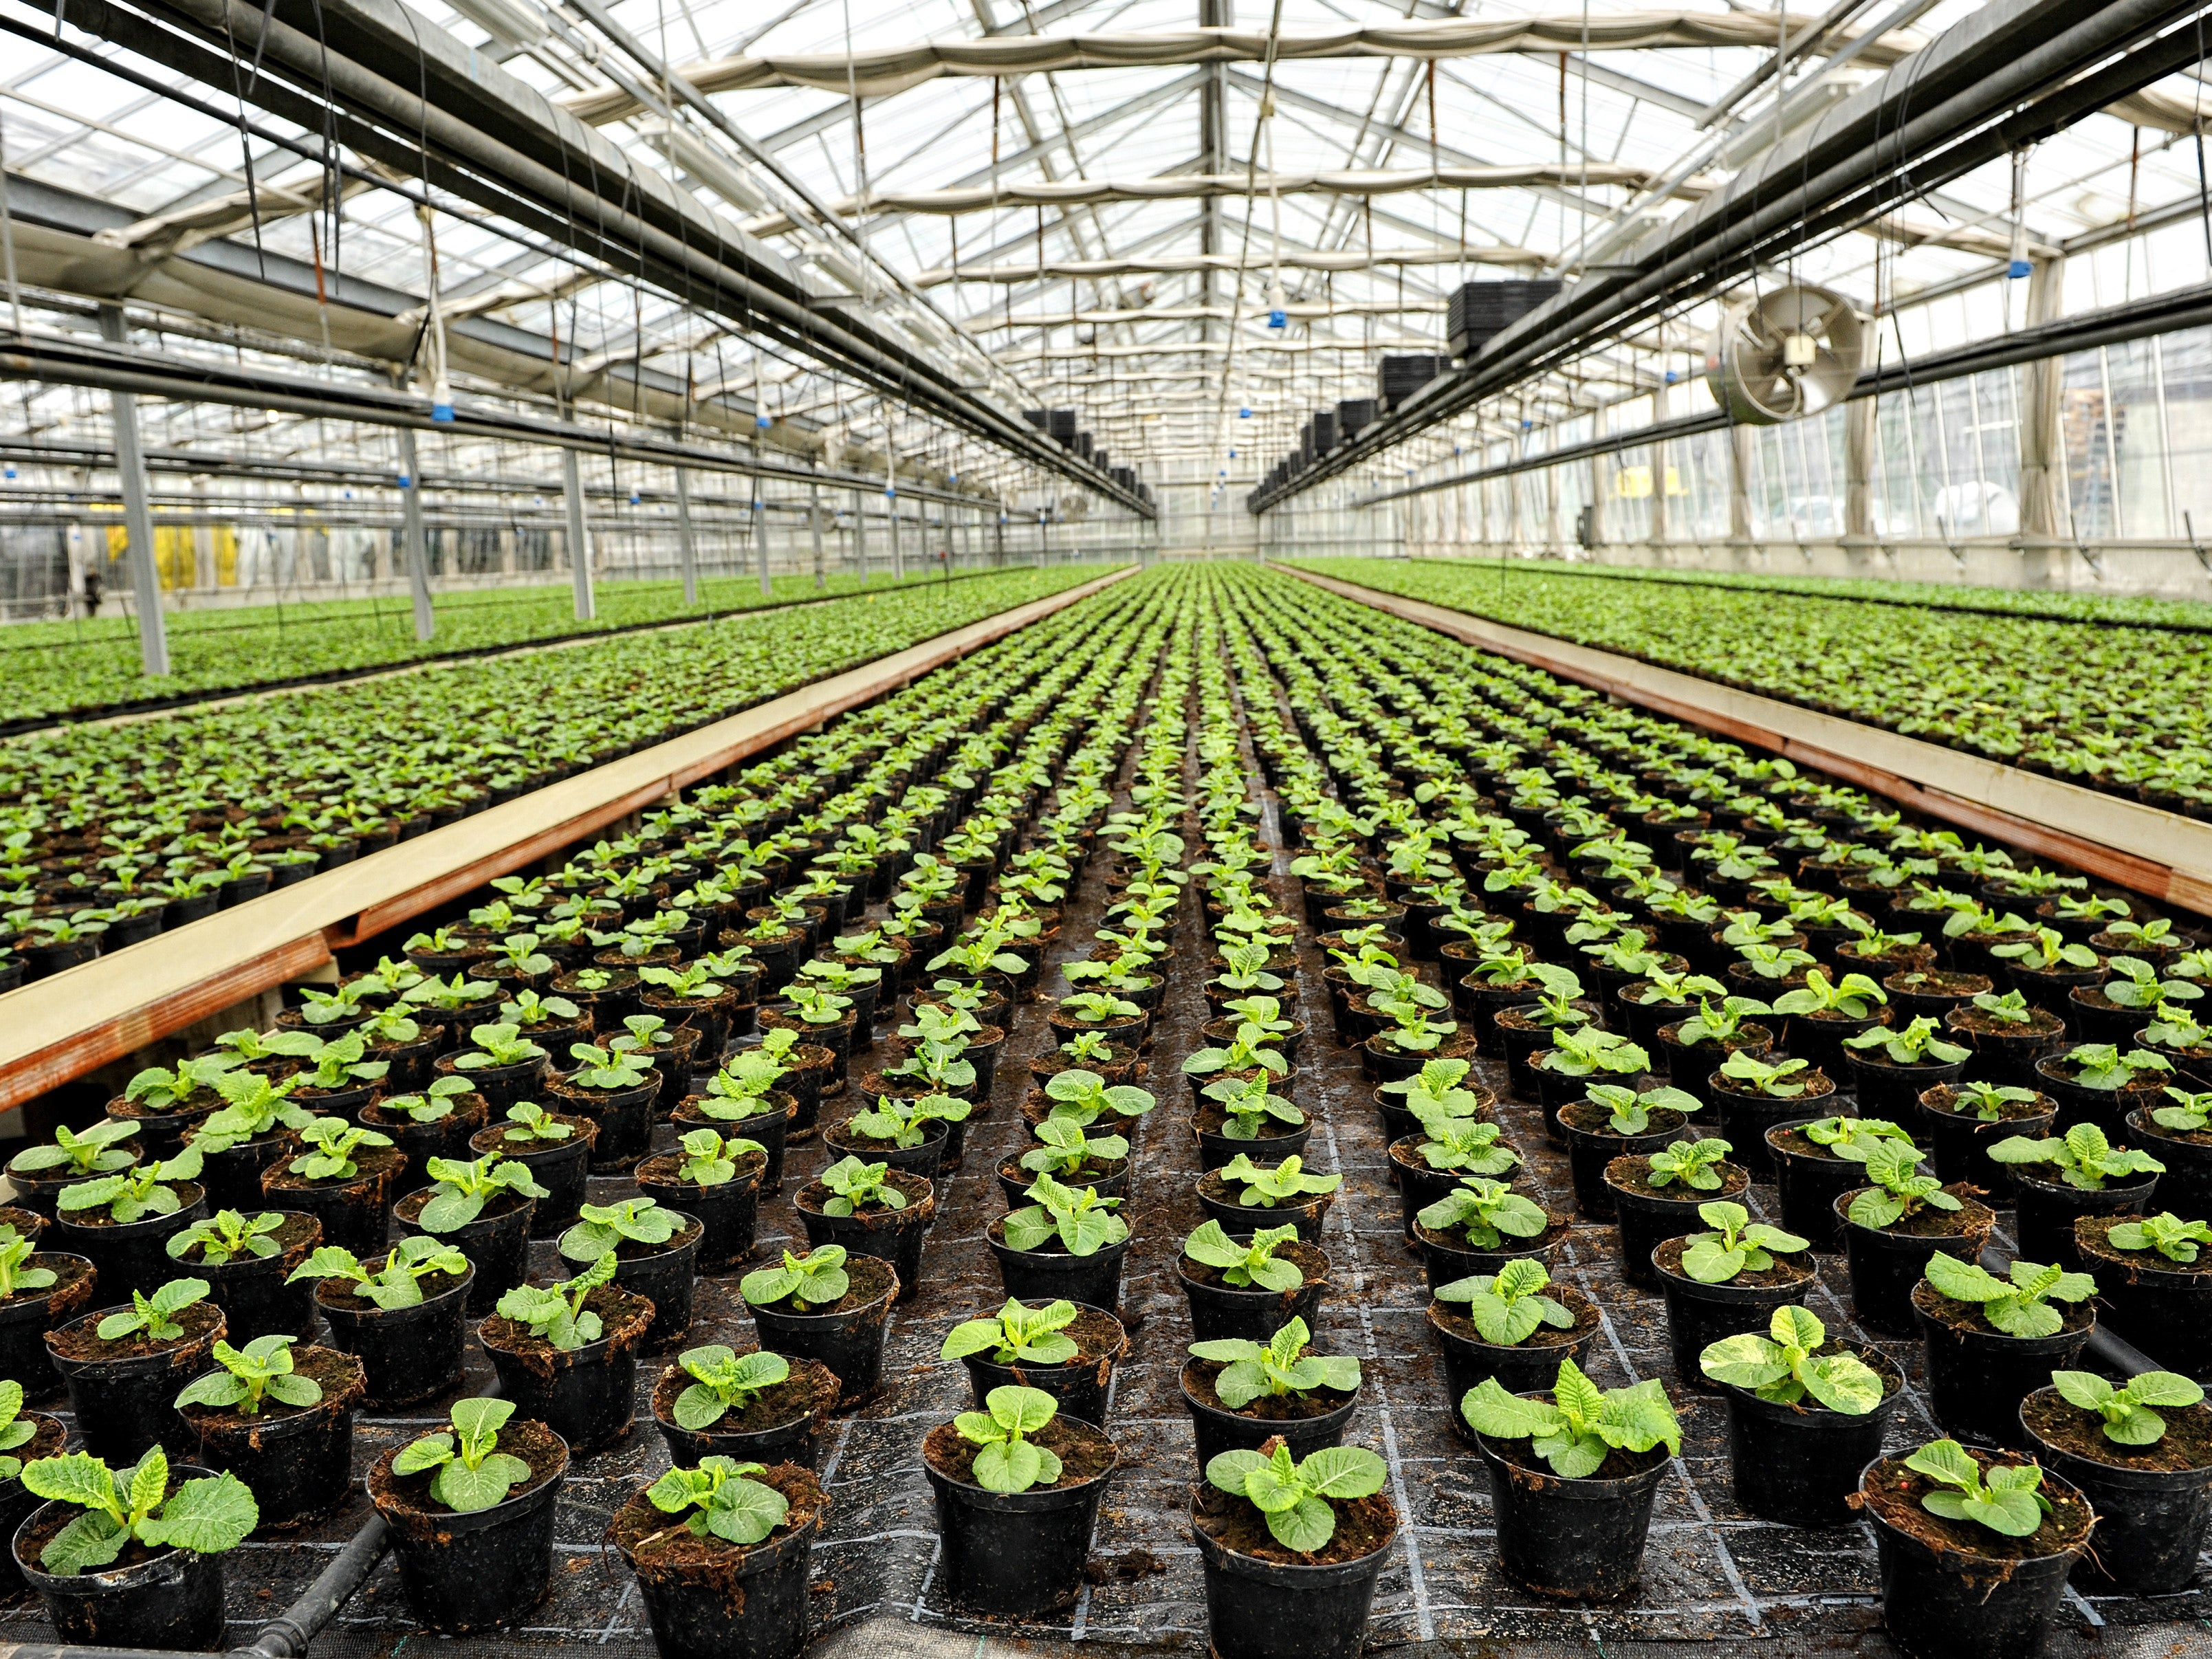 Pro-Gro and Greenhouse